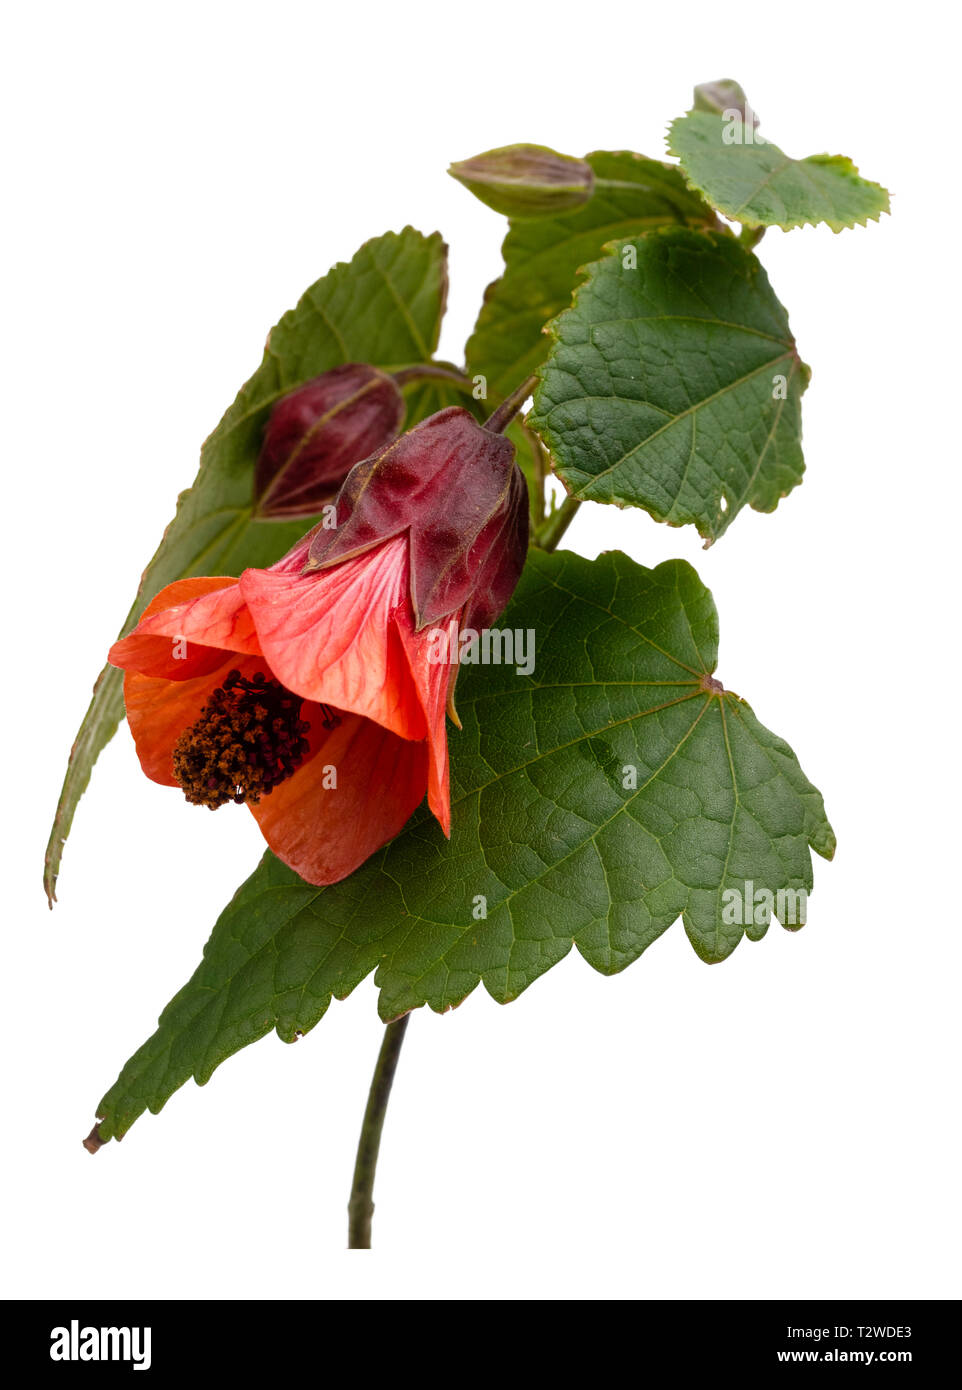 Orange bell flower of the half hardy, lax growing shrub, Abutilon 'Patrick Synge', isolated on white - Stock Image